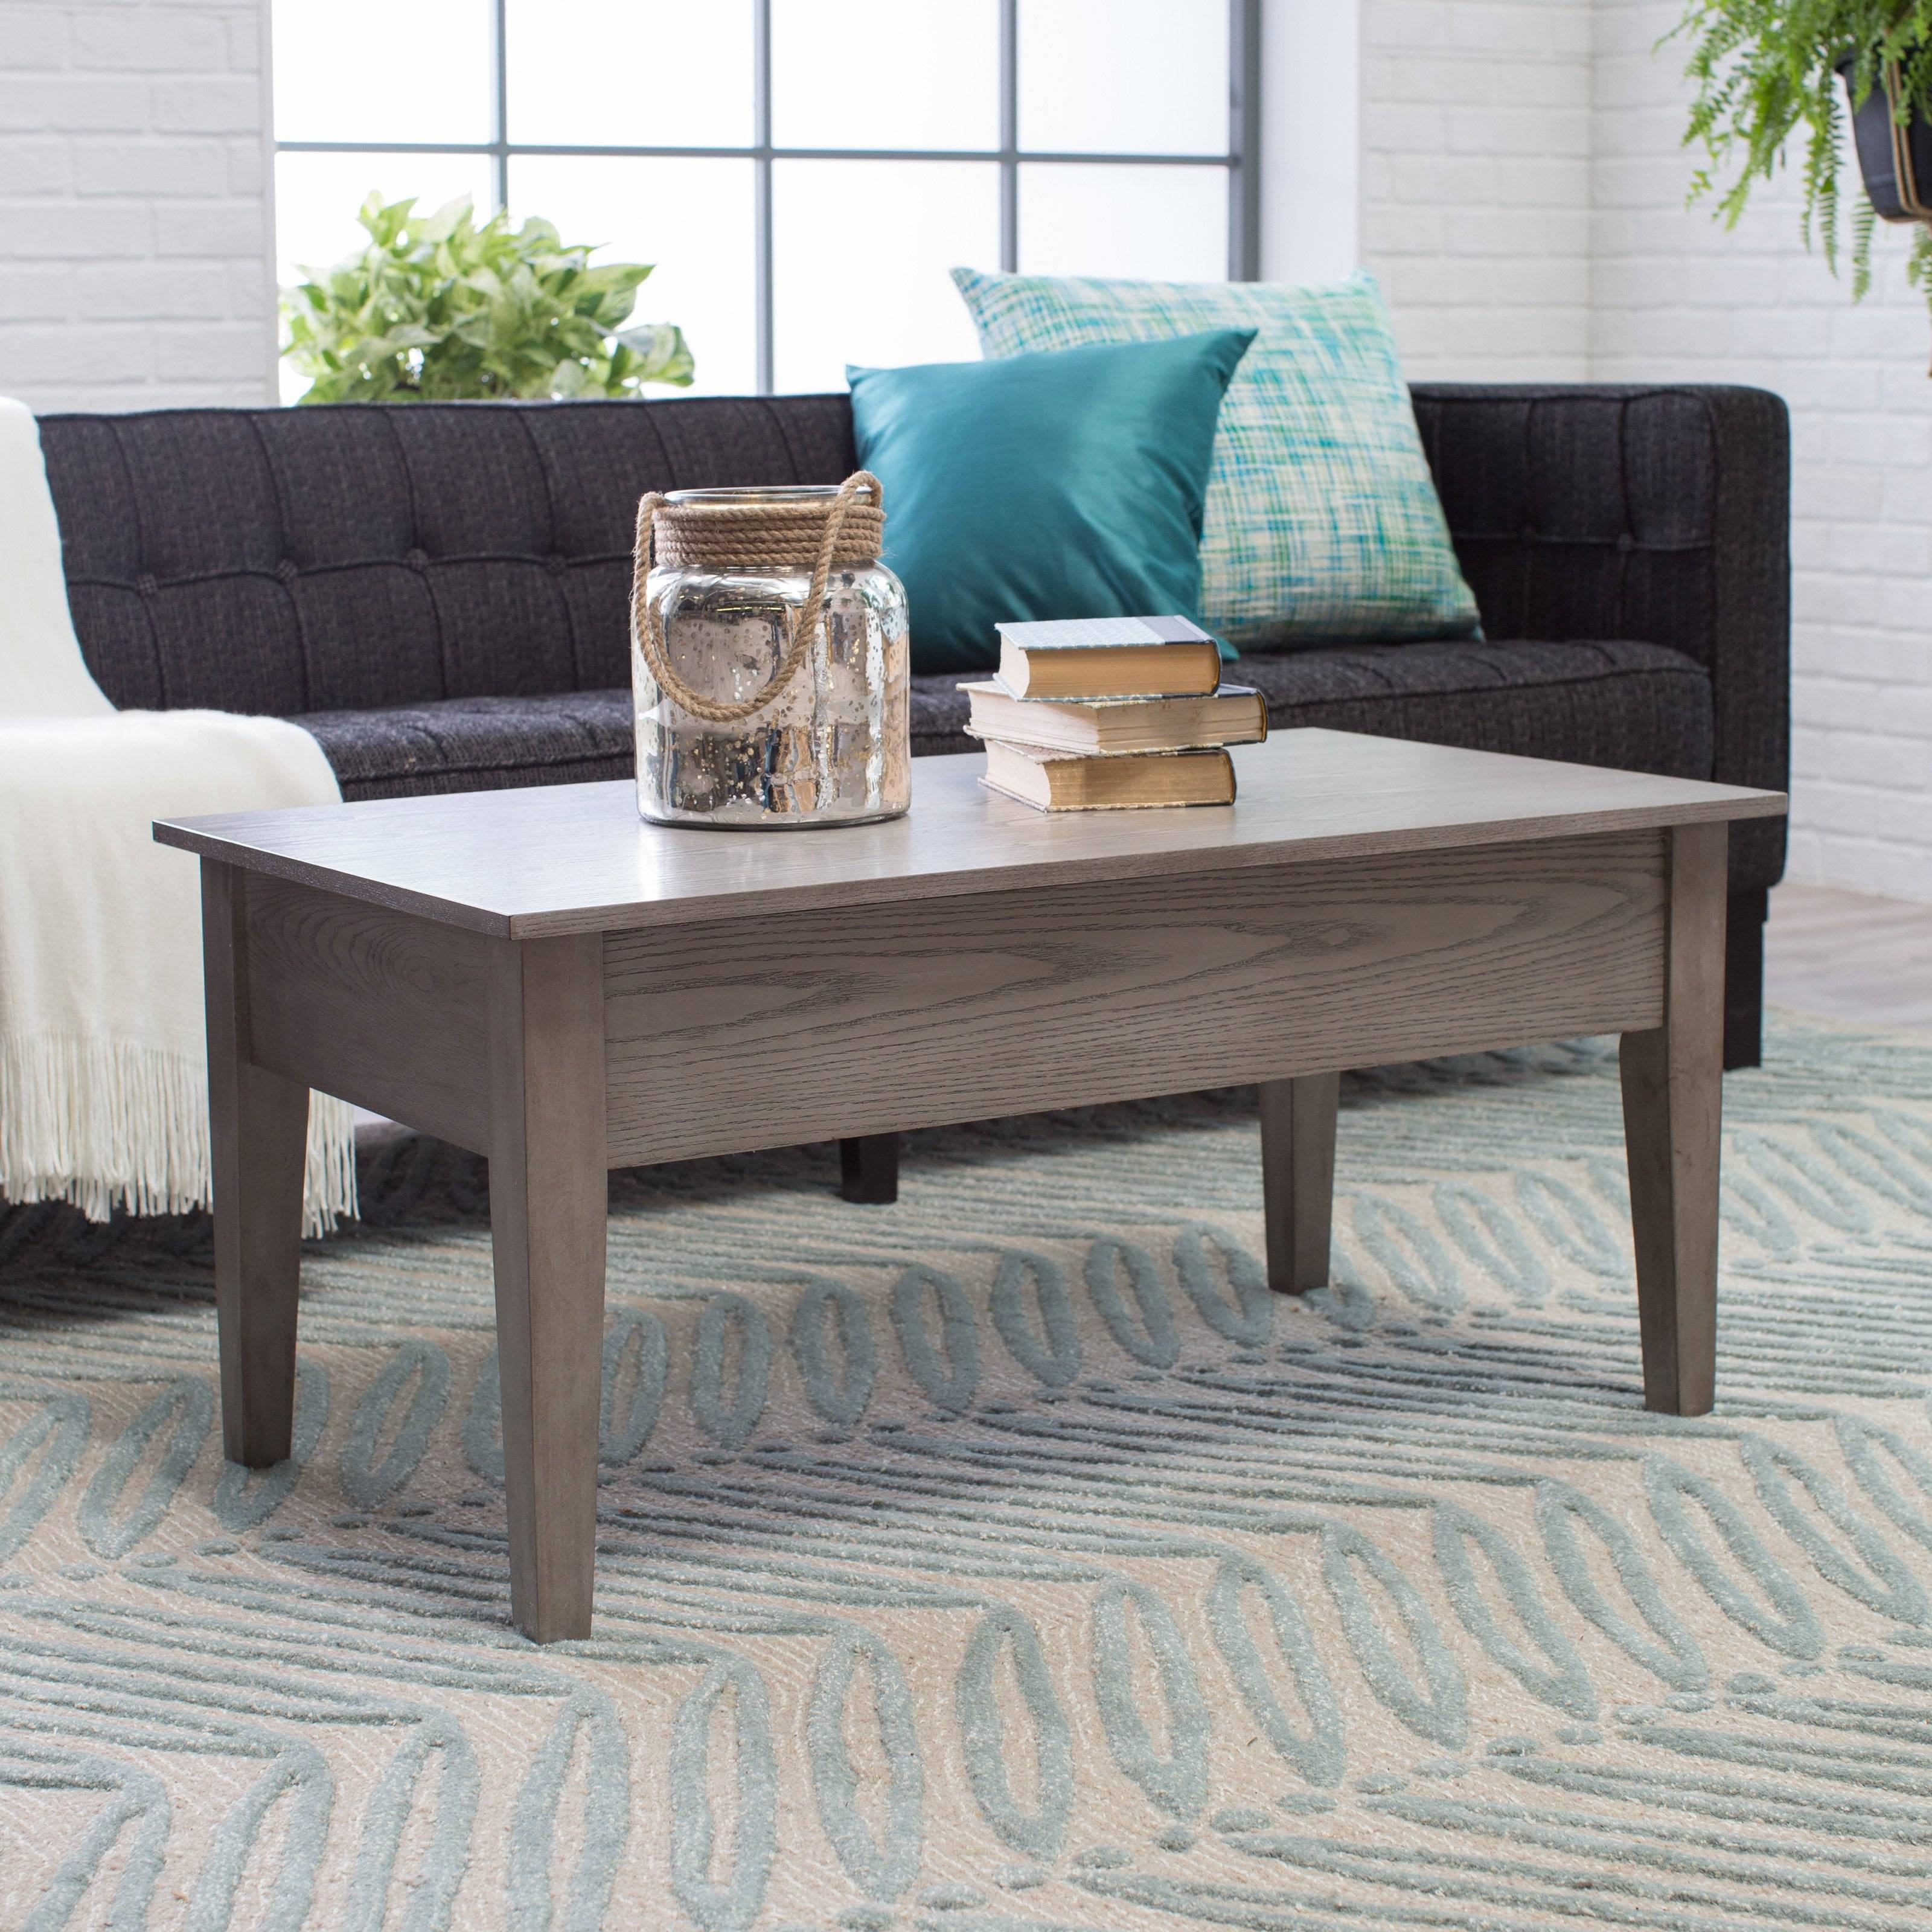 Turner Lift Top Coffee Table - Gray | Hayneedle throughout Coffee Tables With Lifting Top (Image 29 of 30)